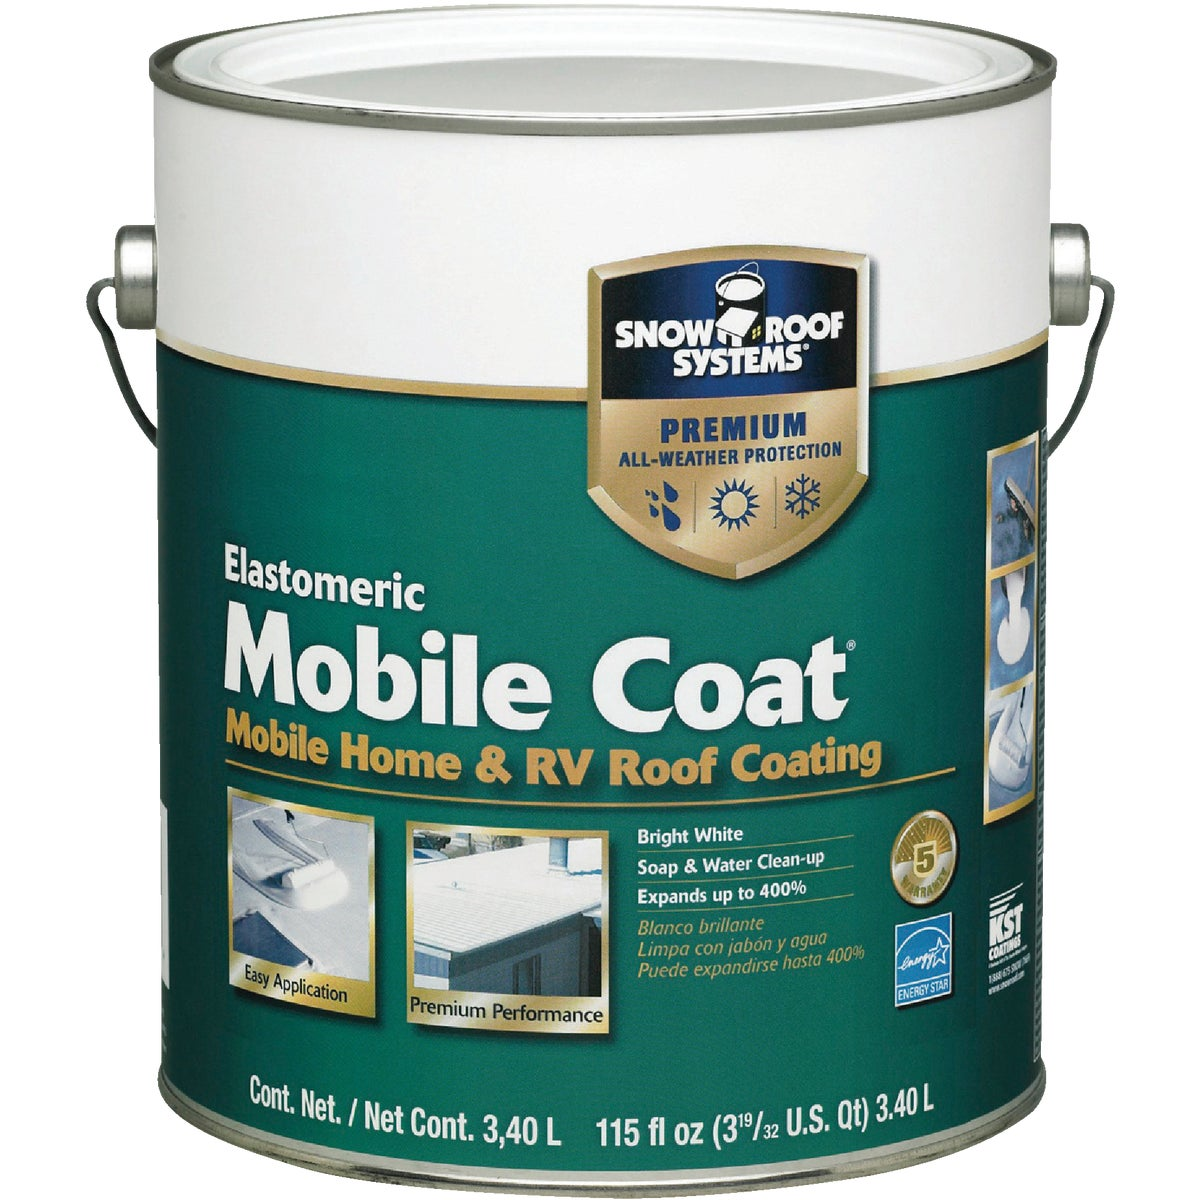 GAL MOBILE ROOF COATING